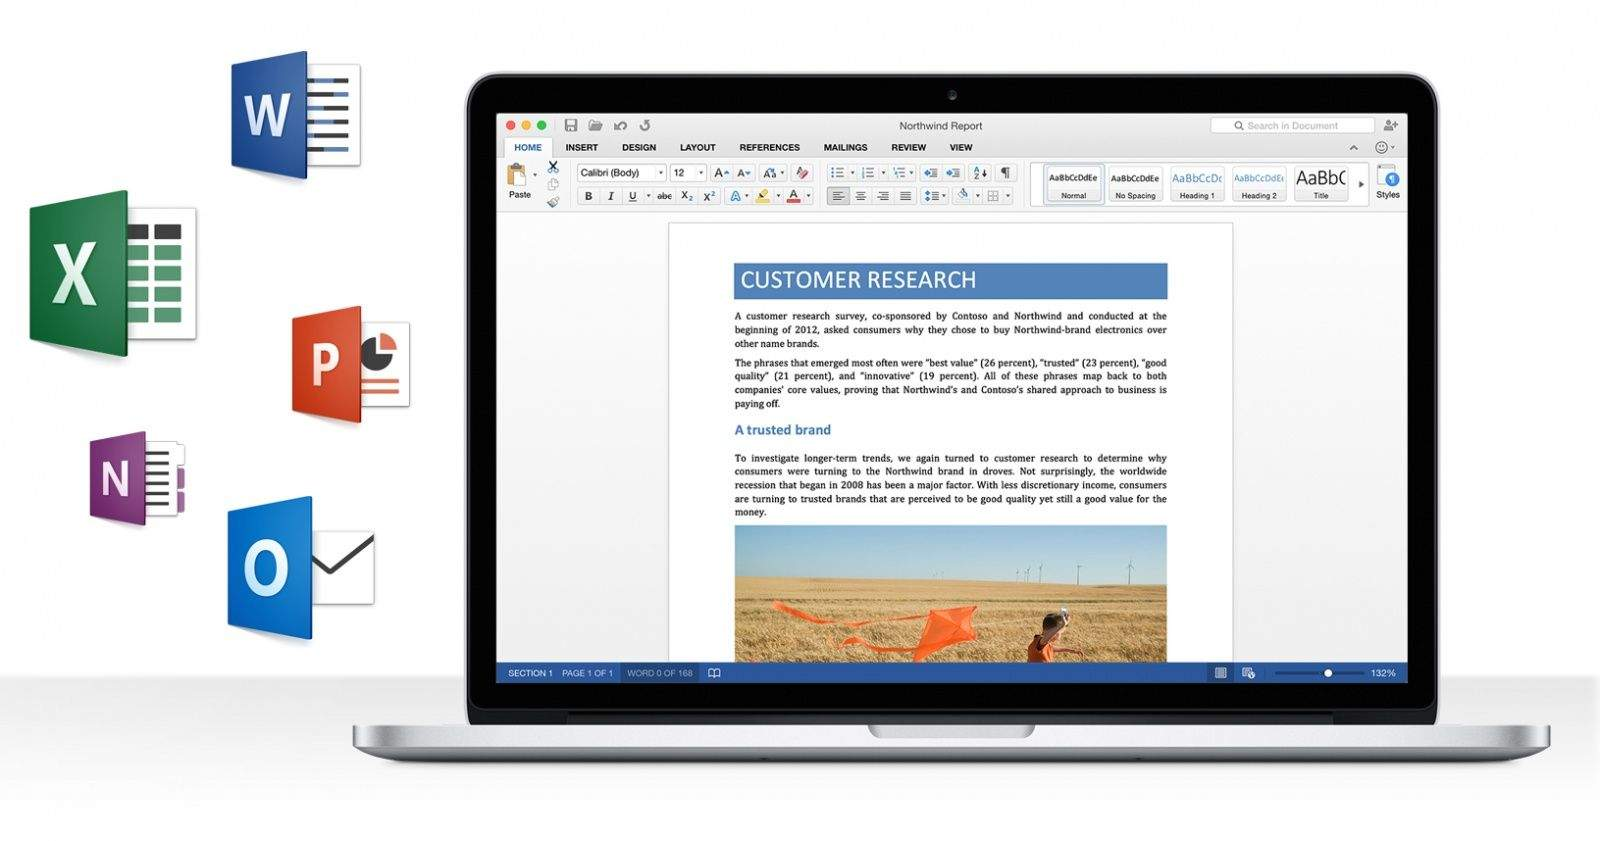 Office 2016 for Mac Retina